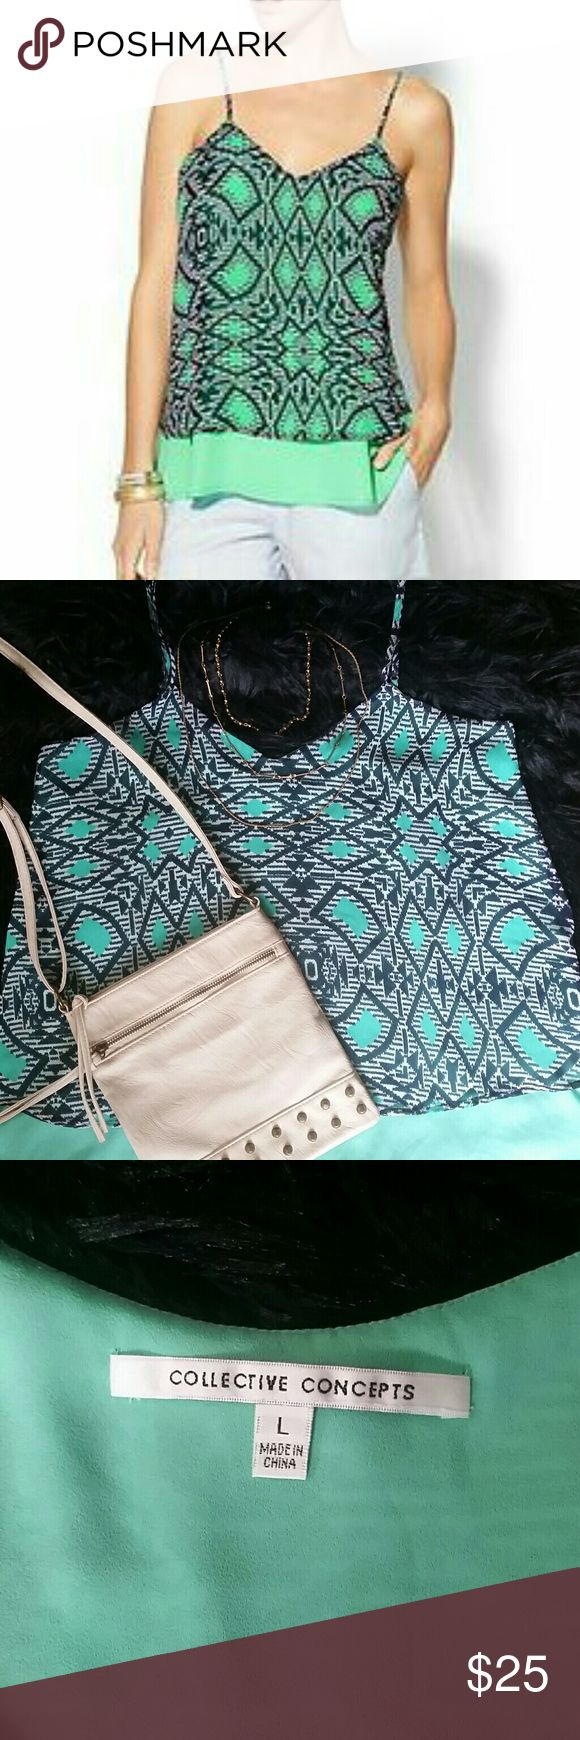 Collective Concepts tile print cami Aztec pattern with rich navy, teal and subtle mint green colors. Adjustable spaghetti straps, v-neck with fit and flare styling.  Polyester double layer, top layer is sheer. In good condition,  right strap was reinforced with navy thread. Collective Concepts Tops Tank Tops